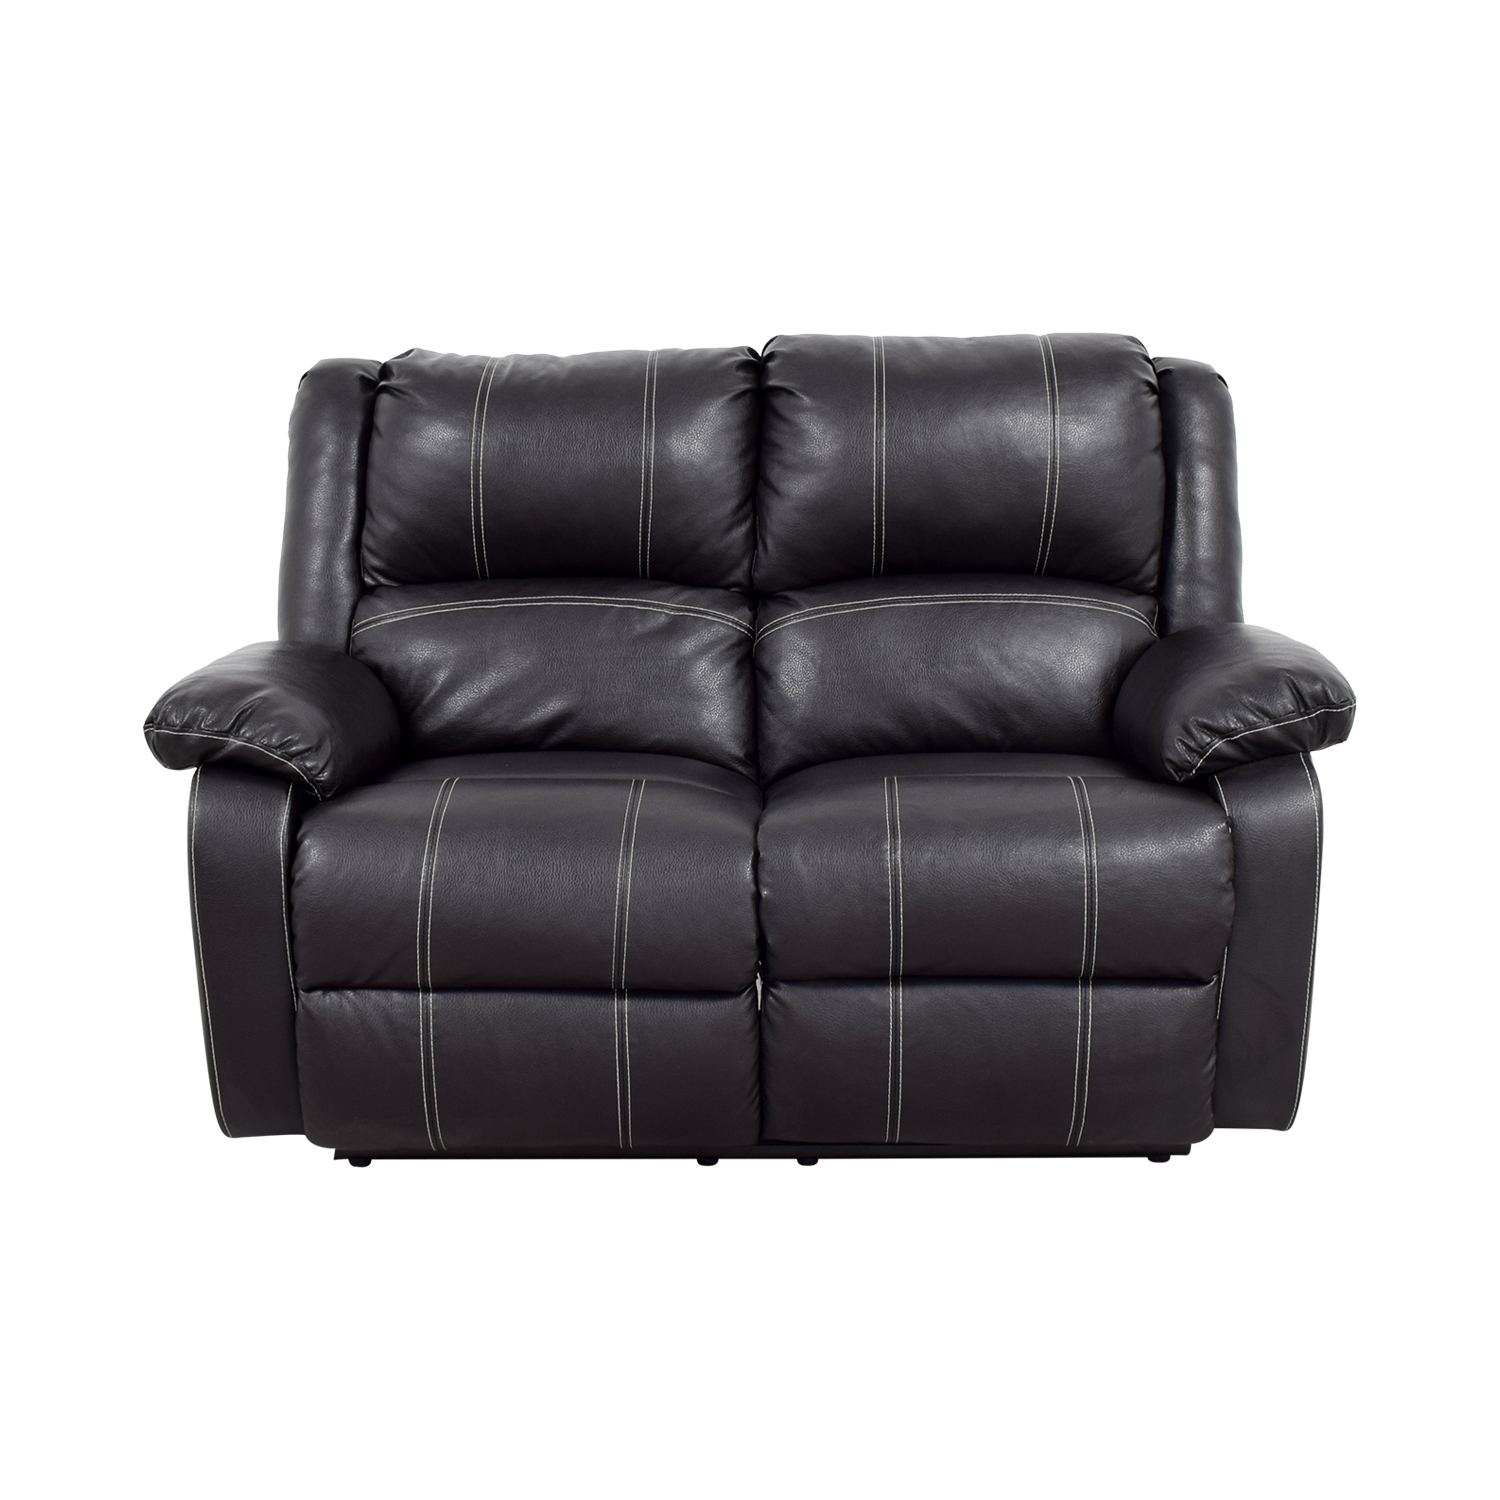 recliner sofa leather black overnight corporation hickory nc reclining awesome home